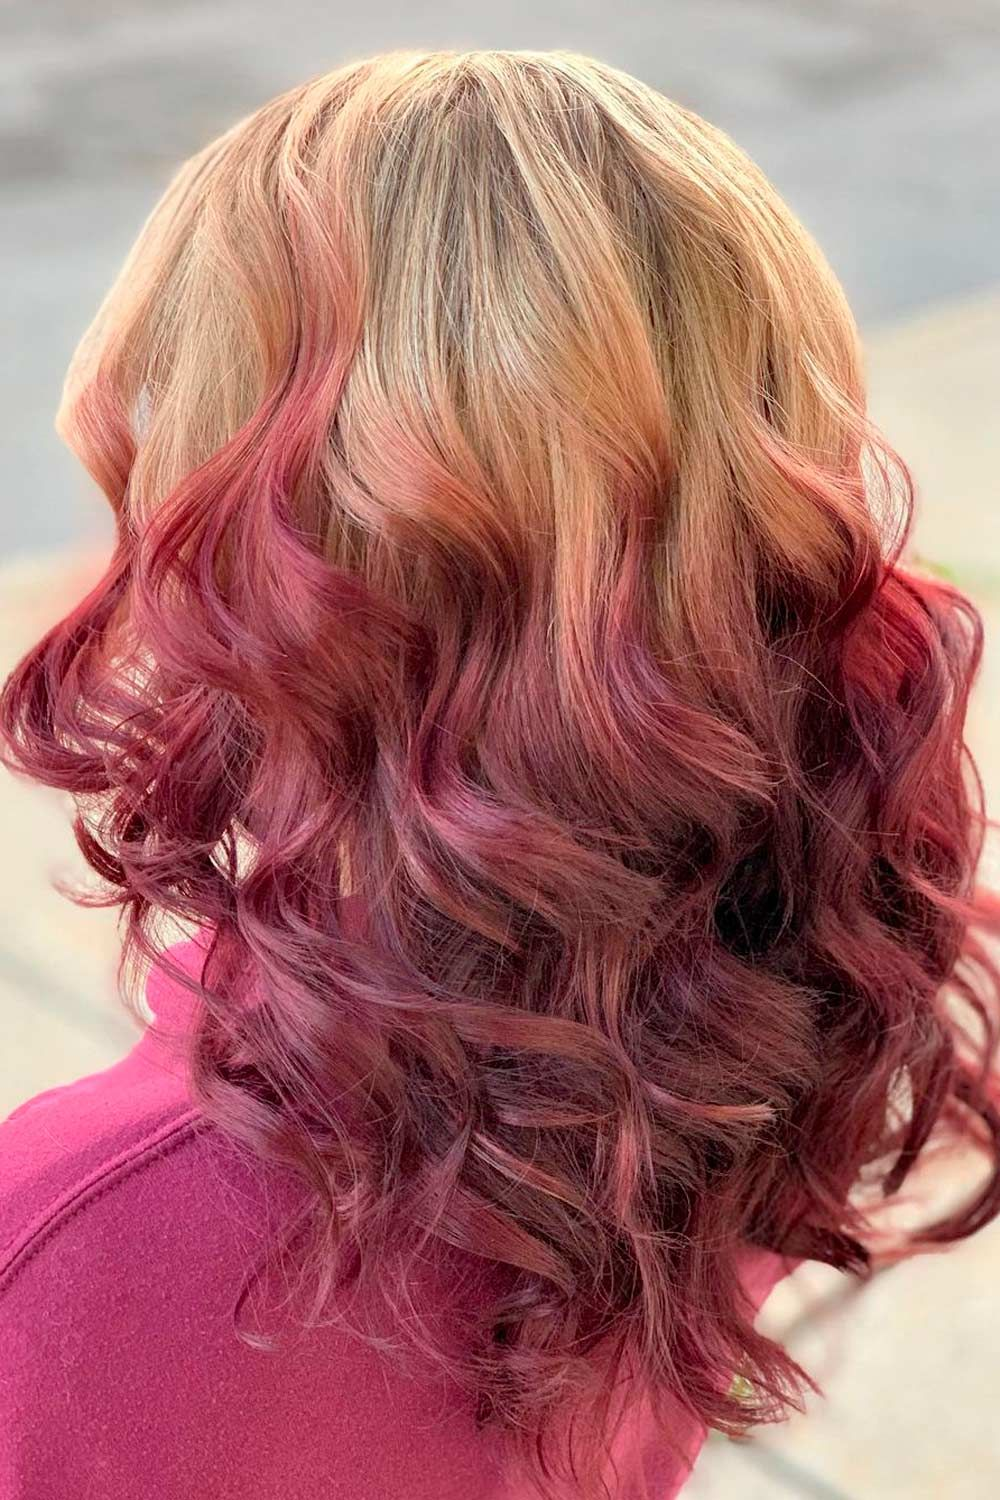 Reverse Red Ombre Hair With Blonde Top, Pink ombre hair, reverse ombre hair color